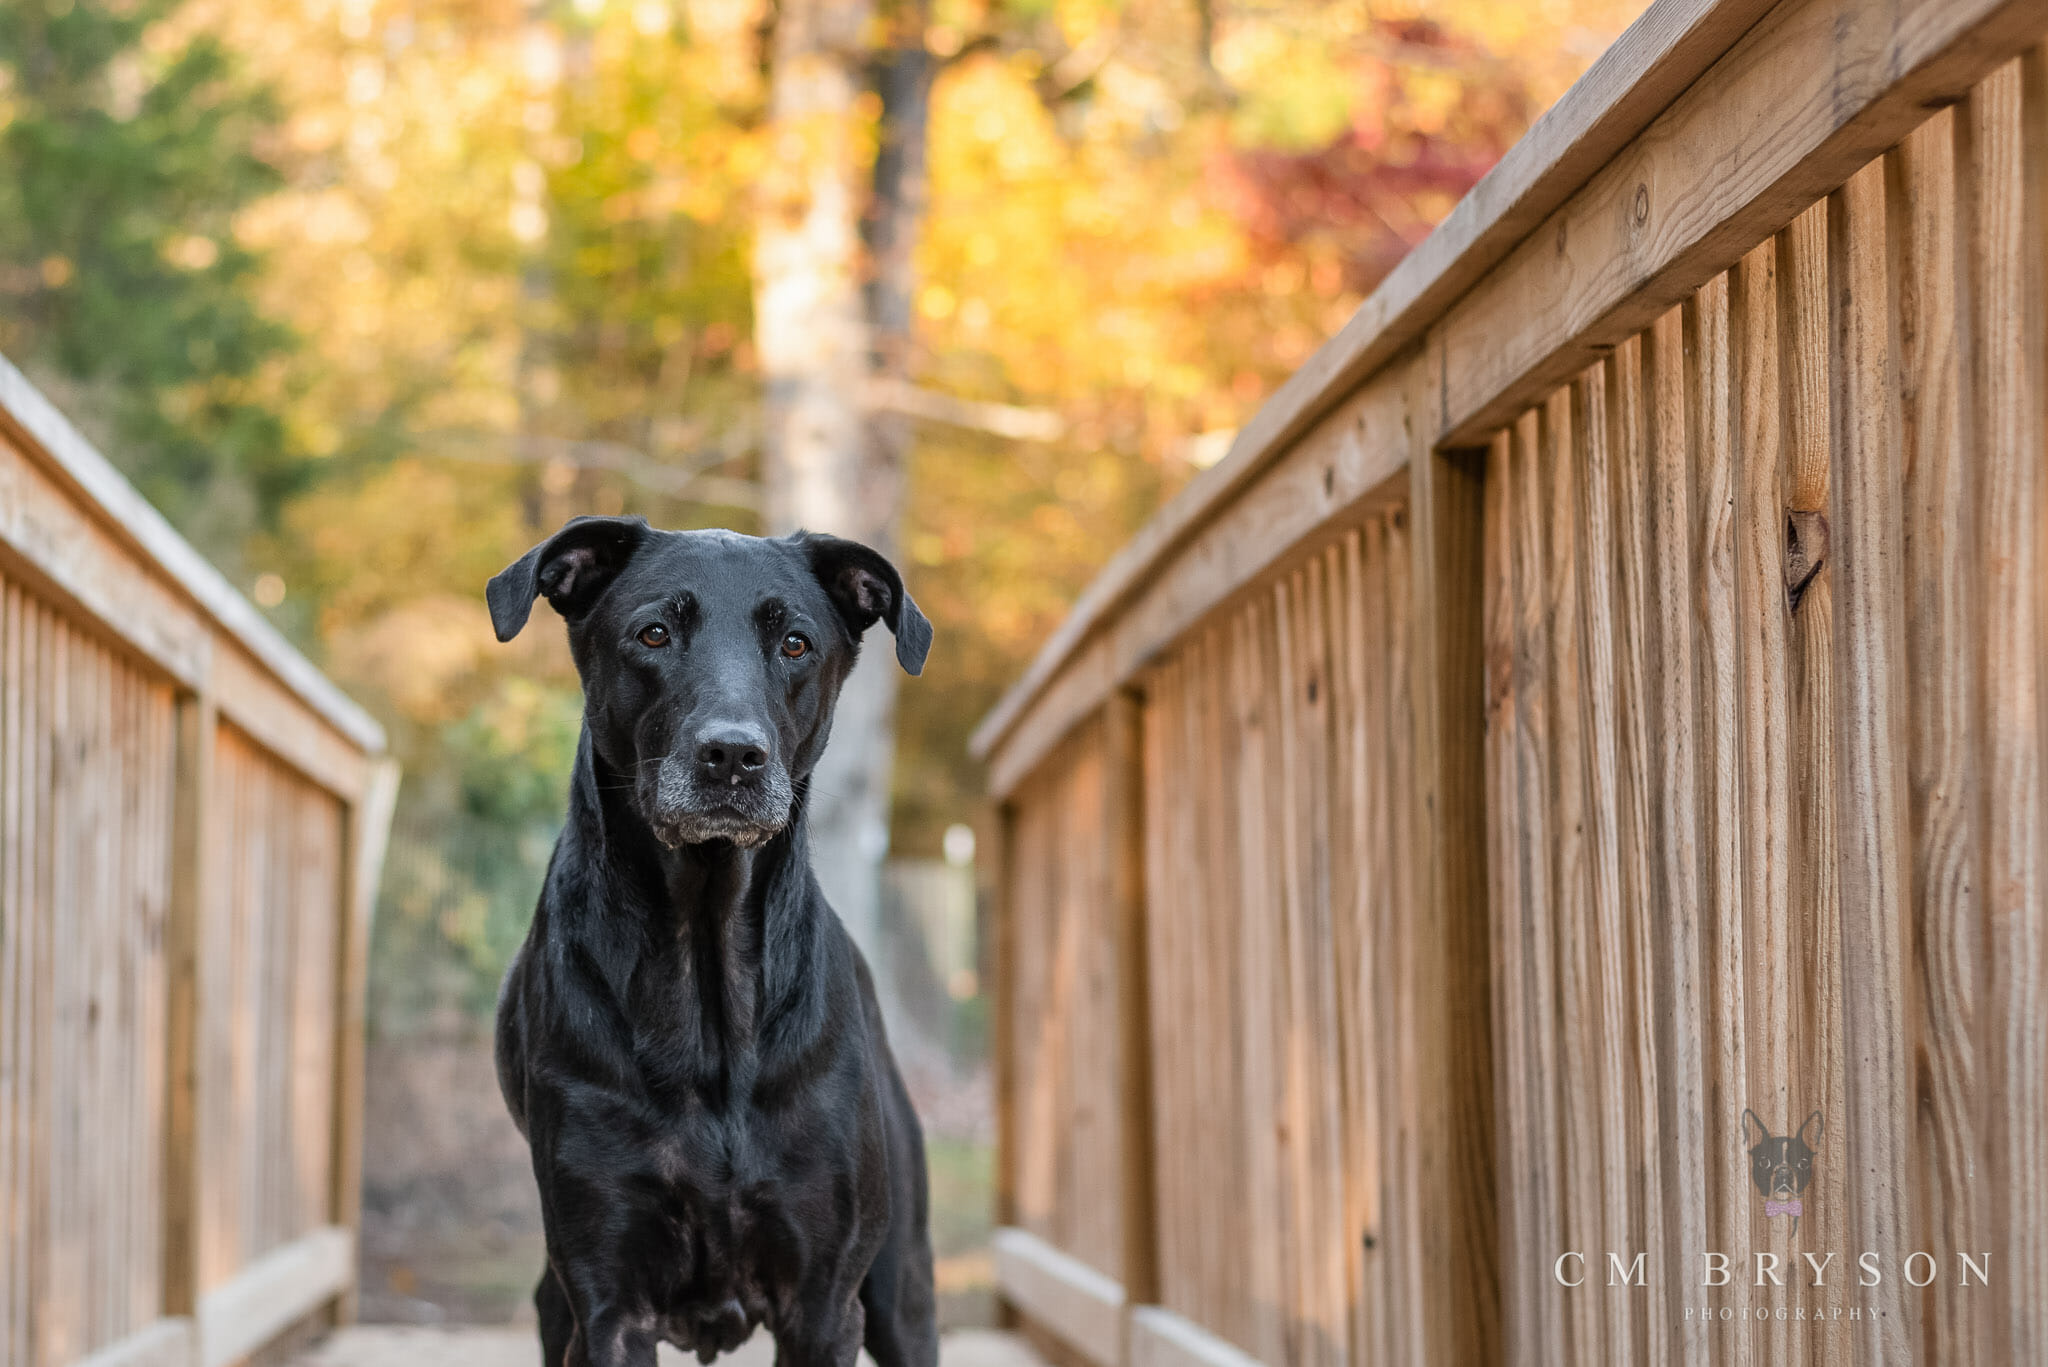 Learning how to choose the best location for pet photography means your black dog won't look like a black blob.